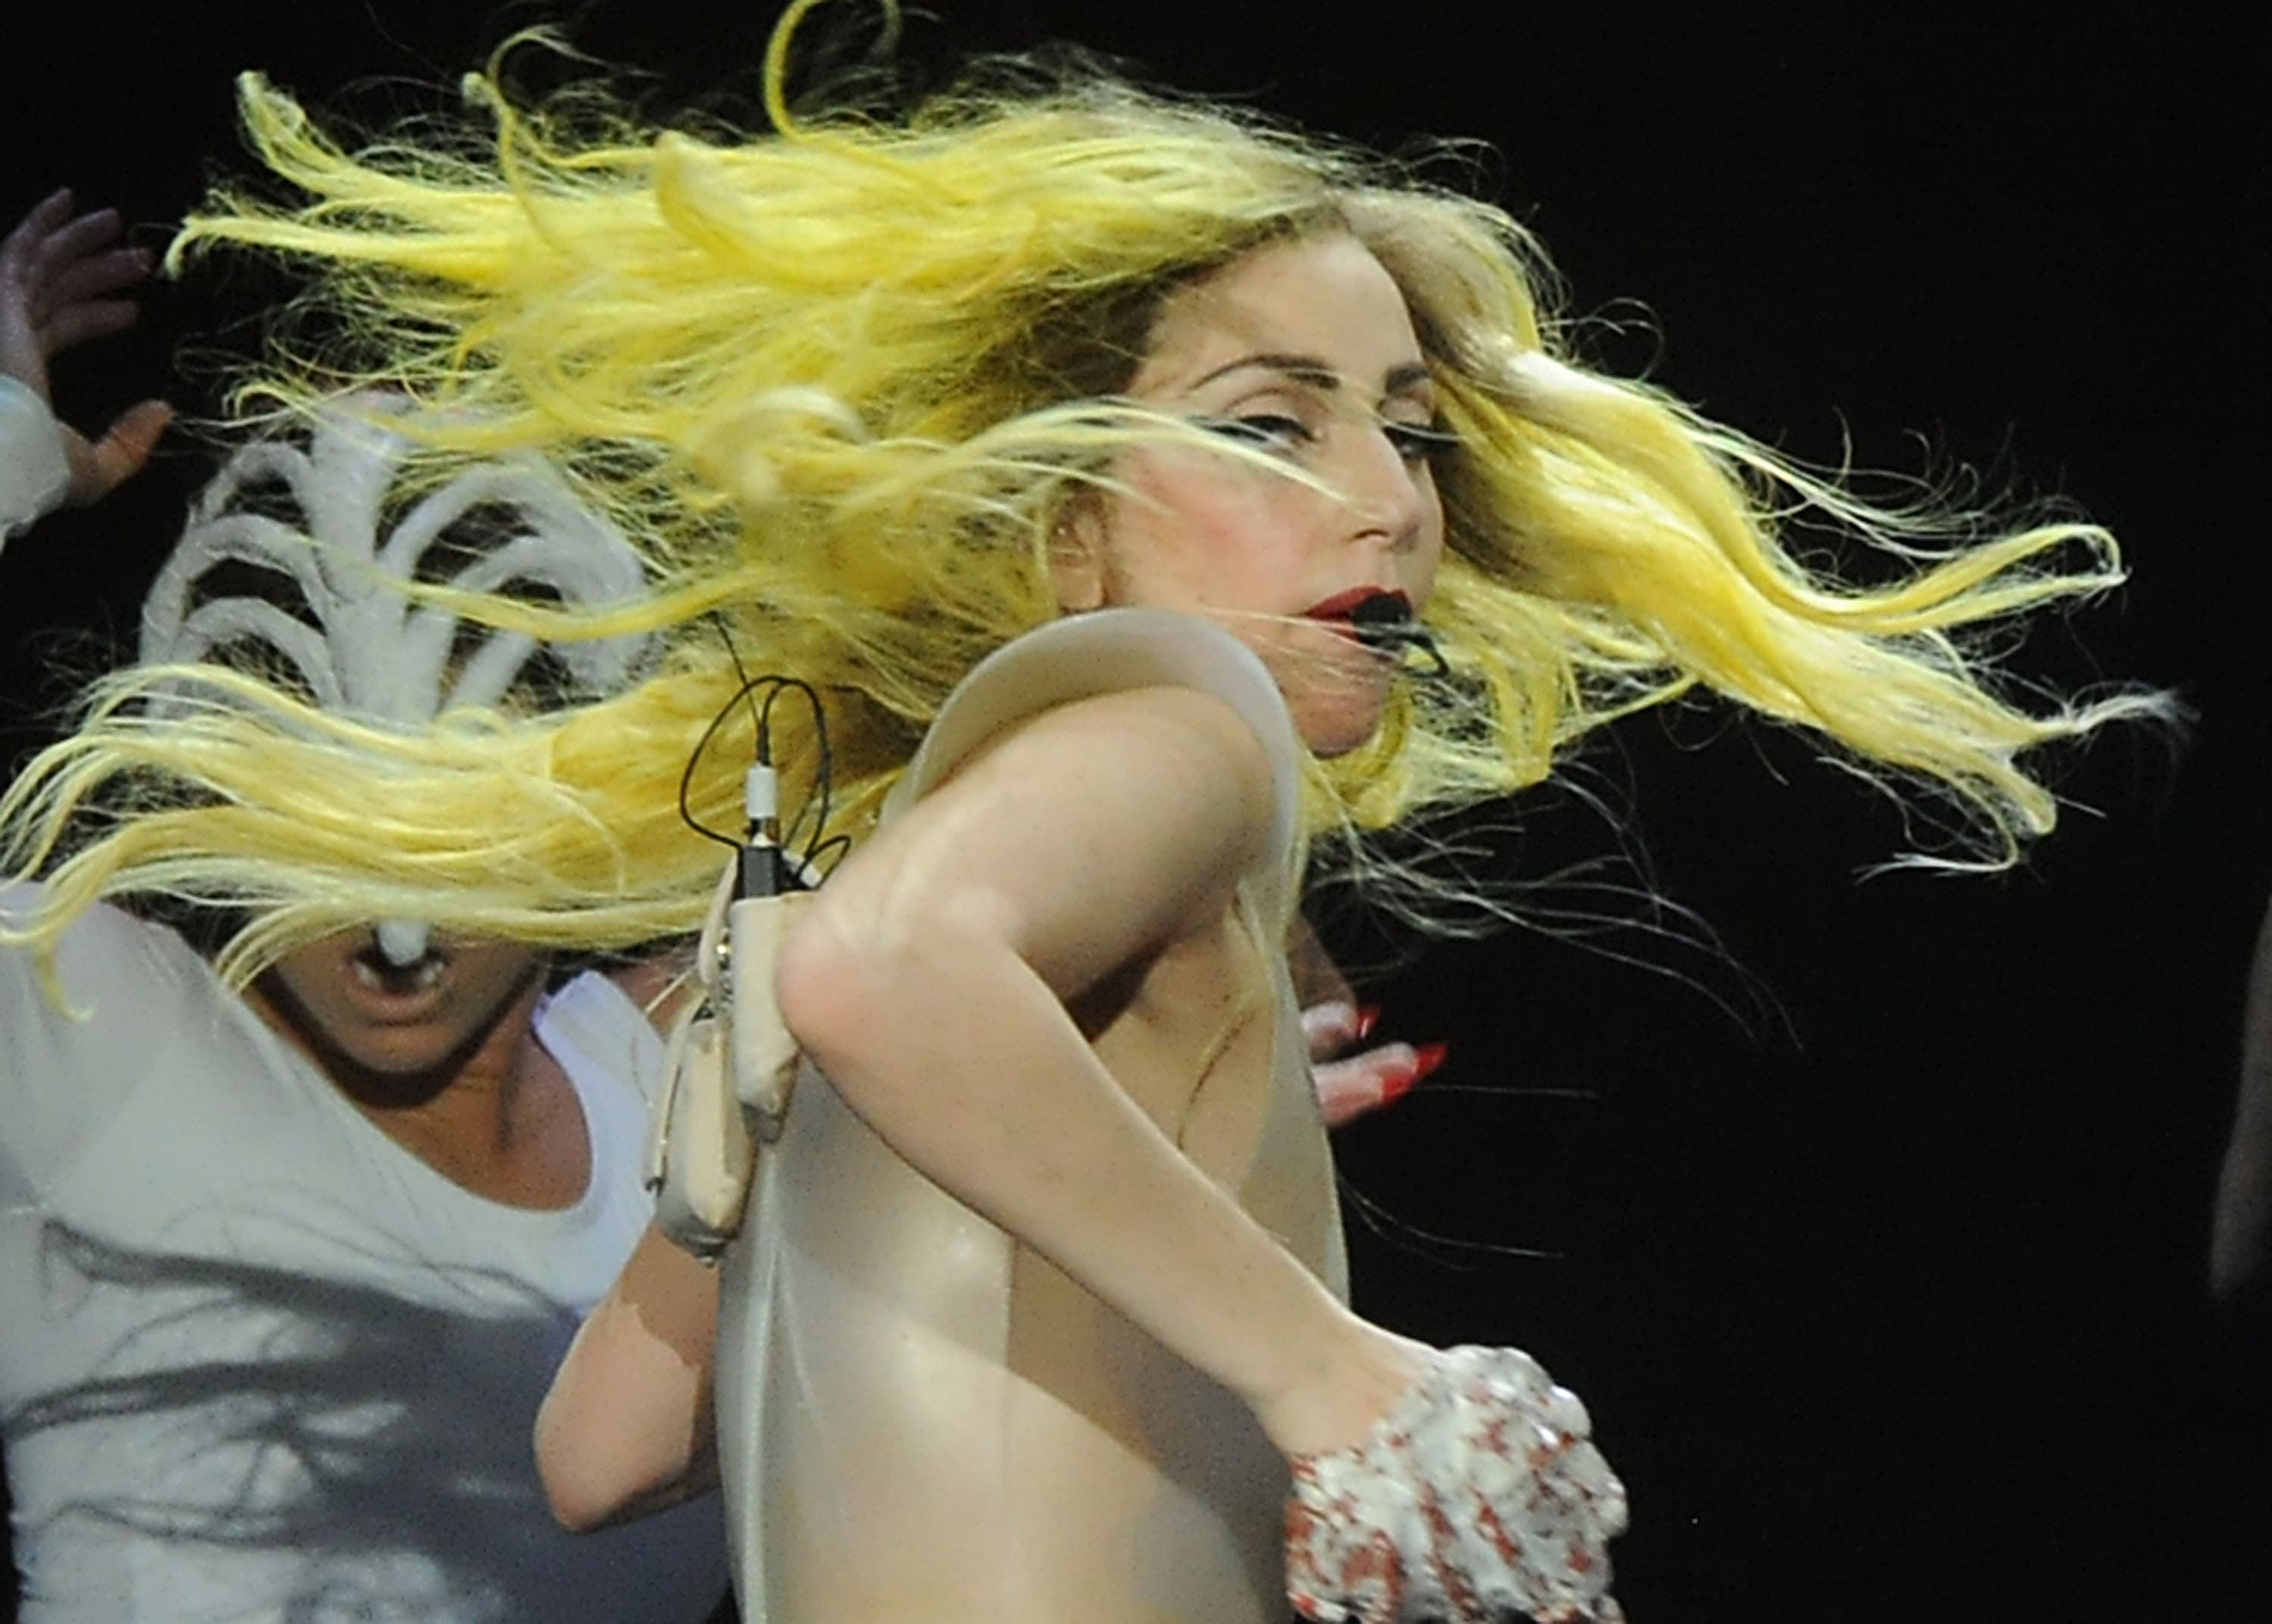 Lady Gaga usually played on autoplay on the Lebanon airwaves banned with her Judas controversial hit.